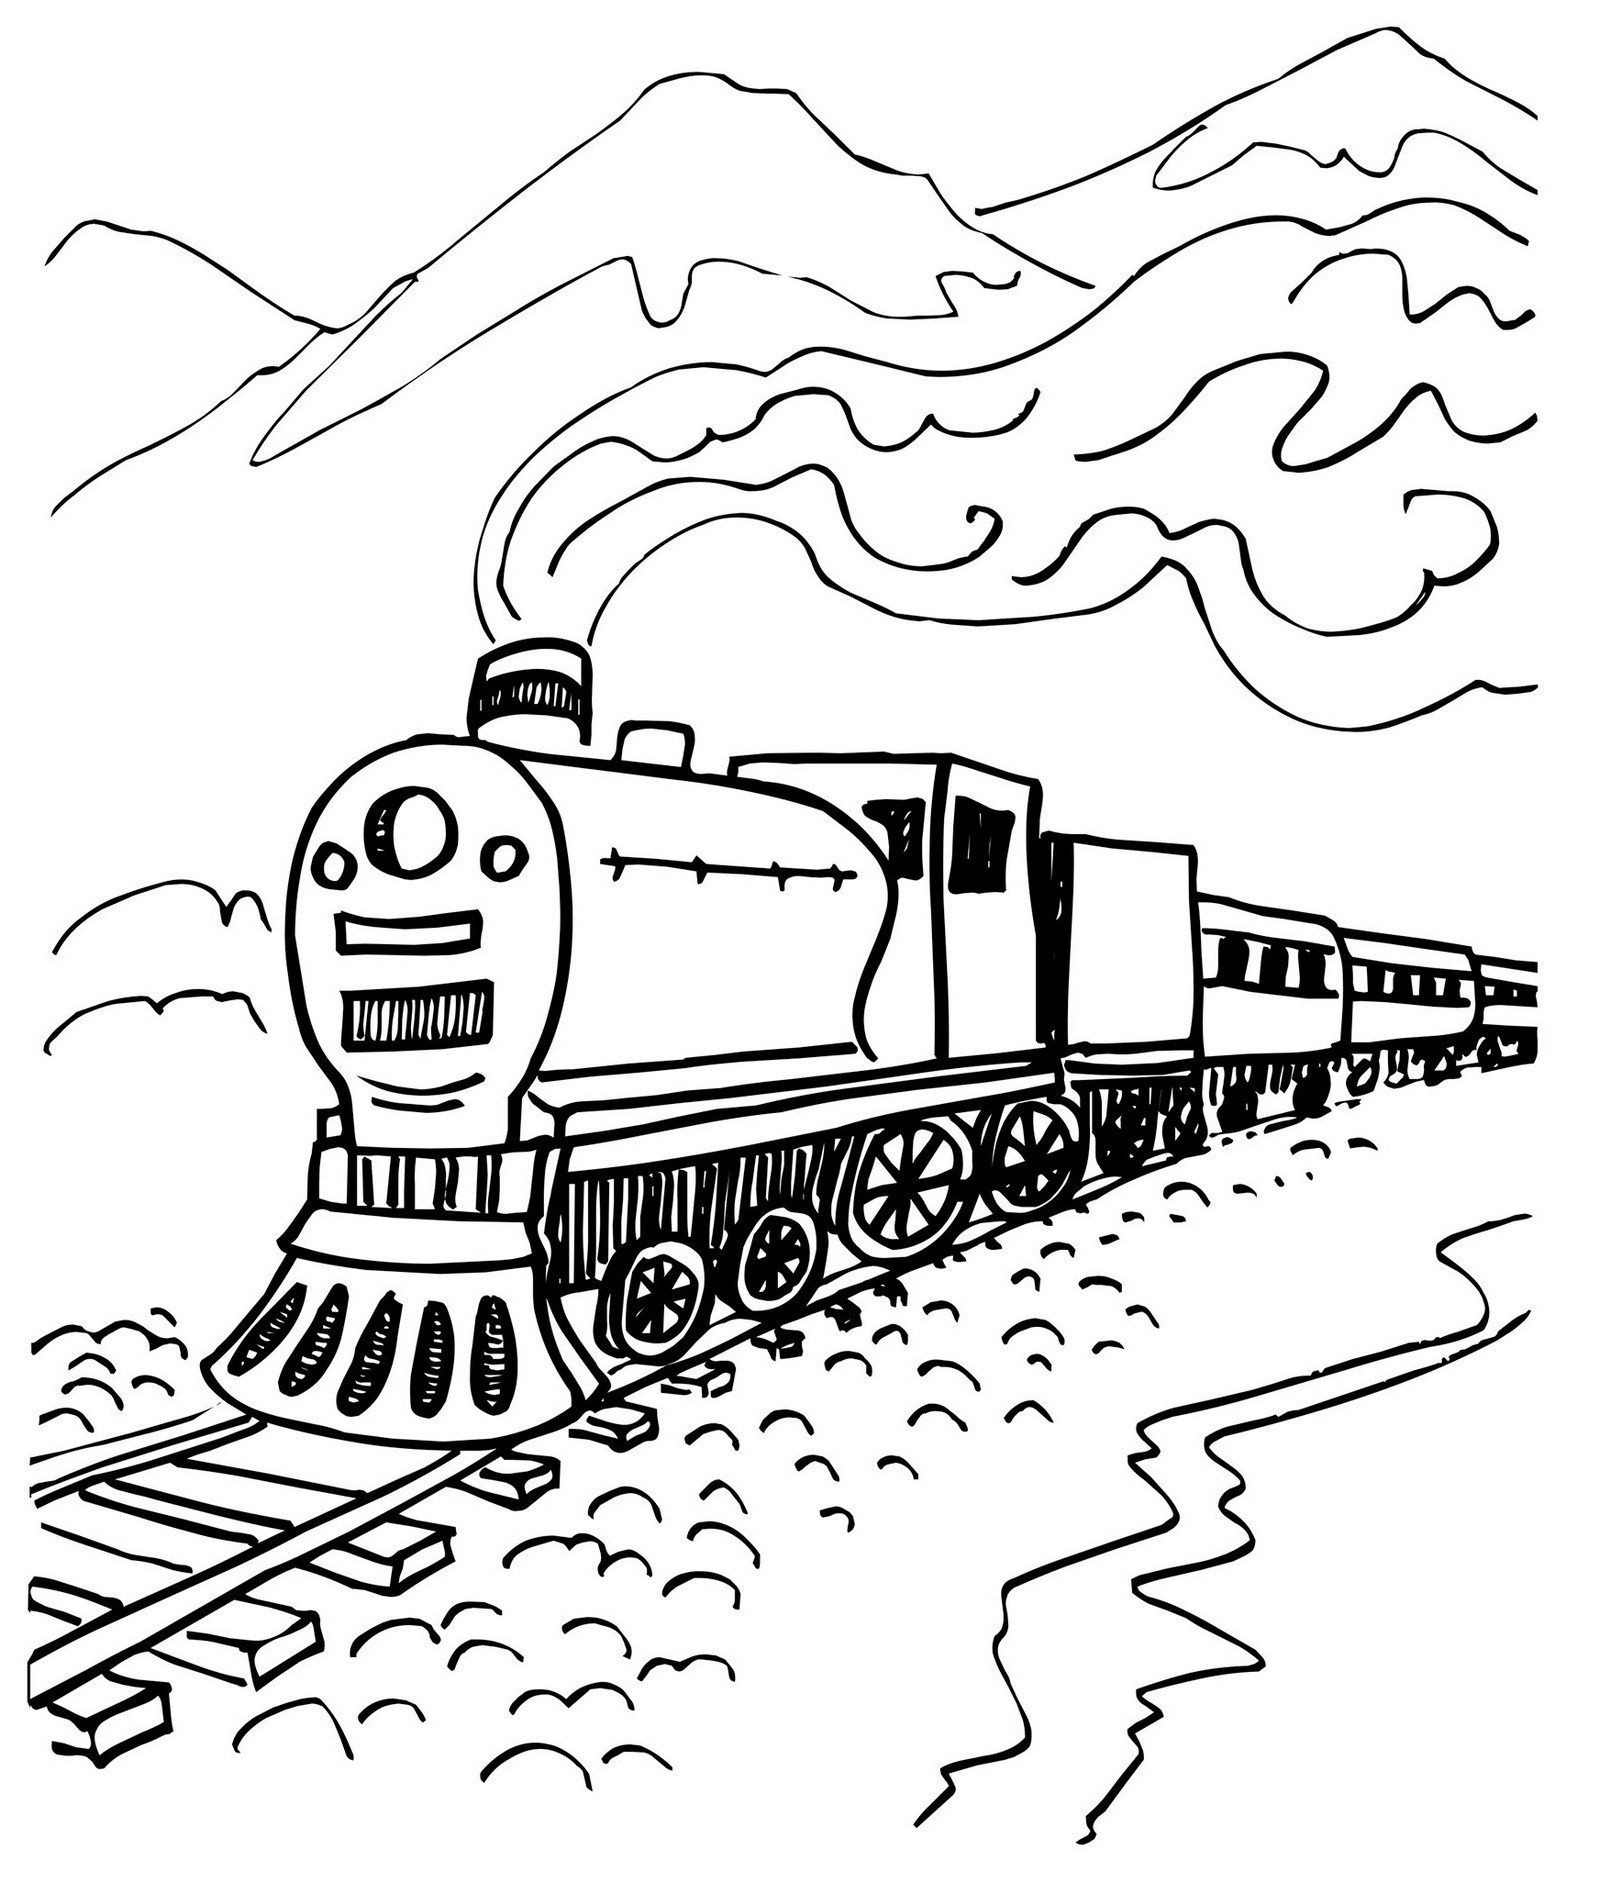 Coloring Pages Trains Steam Steam Locomotive Coloring Pages Train